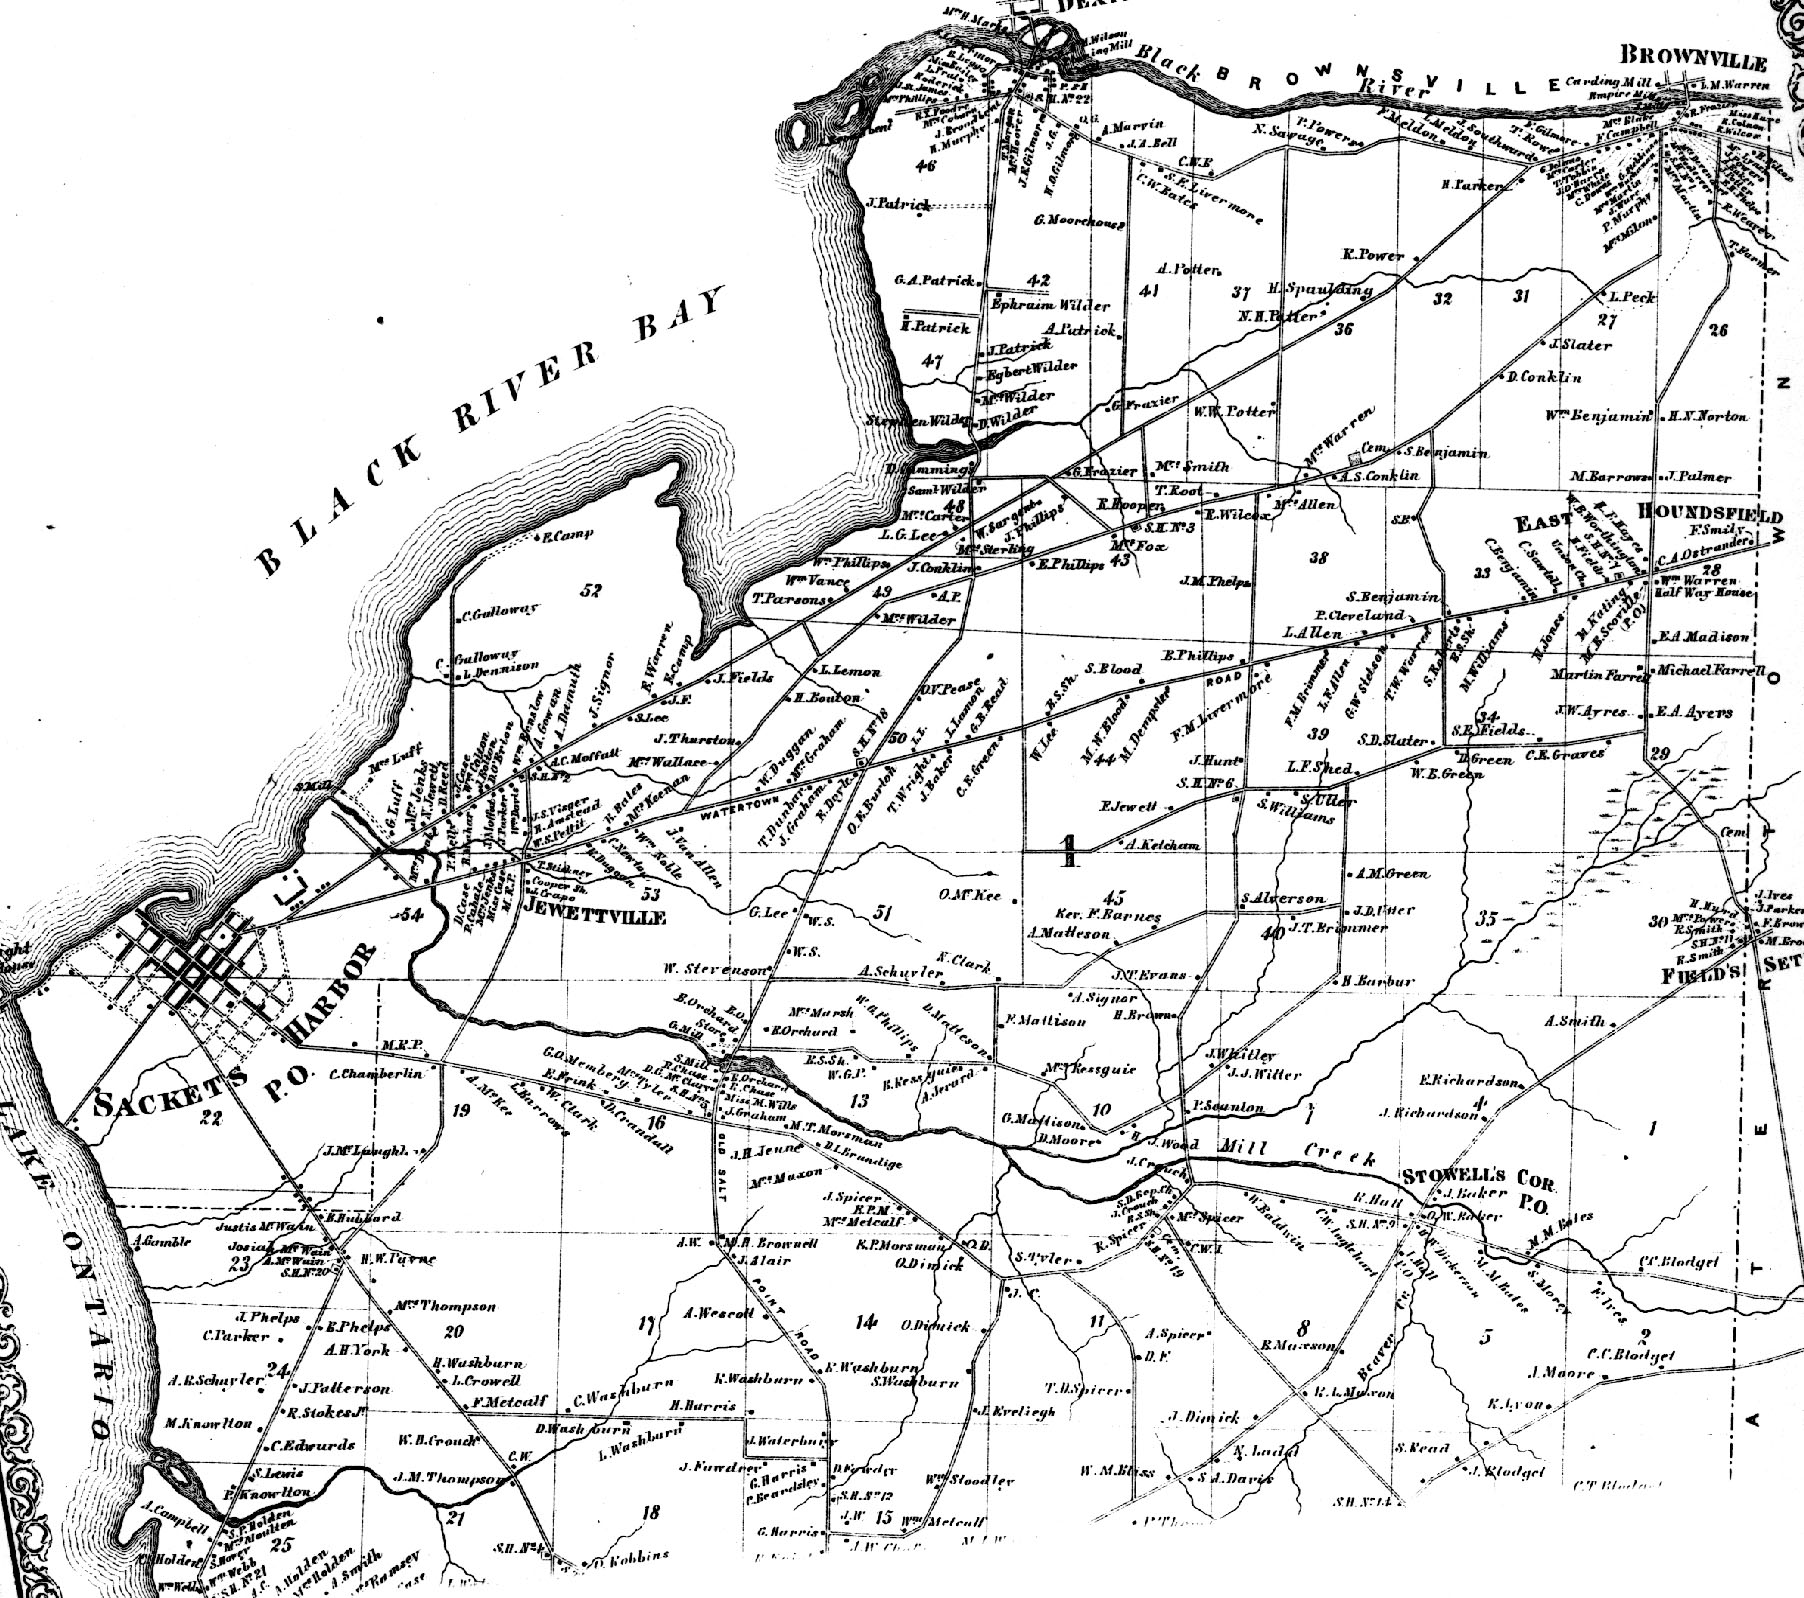 1864 Hounsfield Town Map